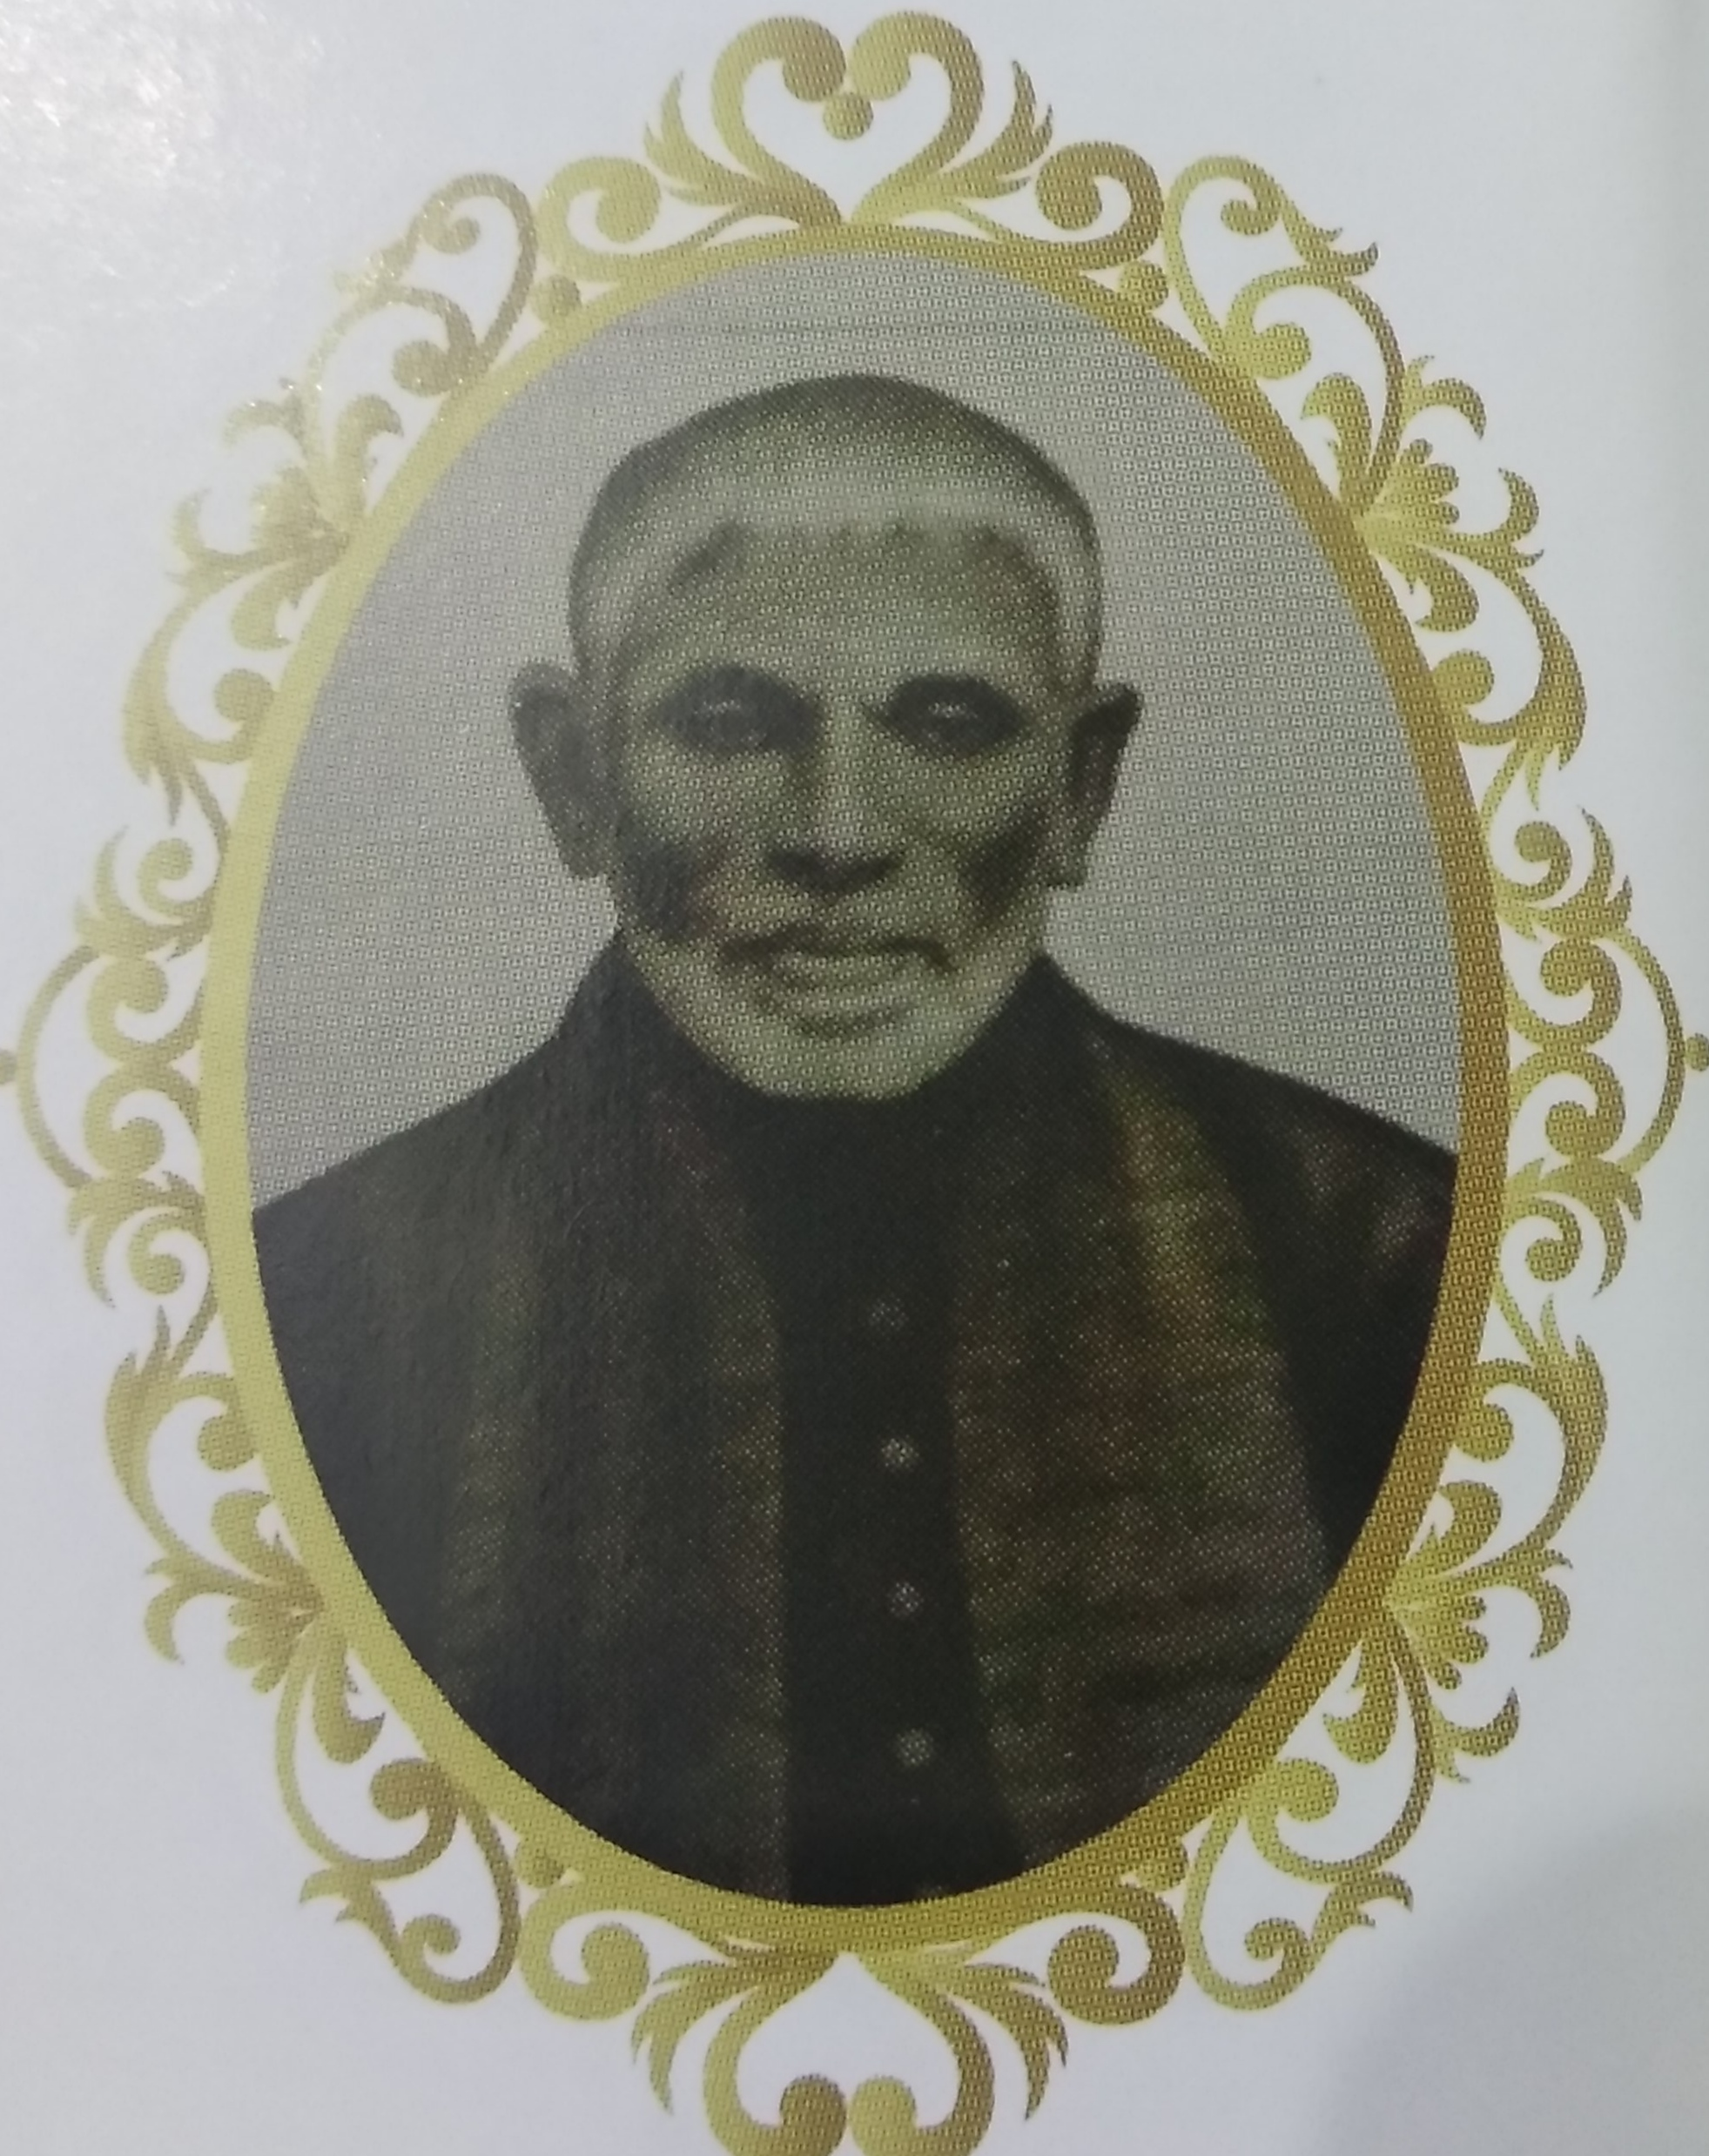 Fr. Theophilous Pandippilly